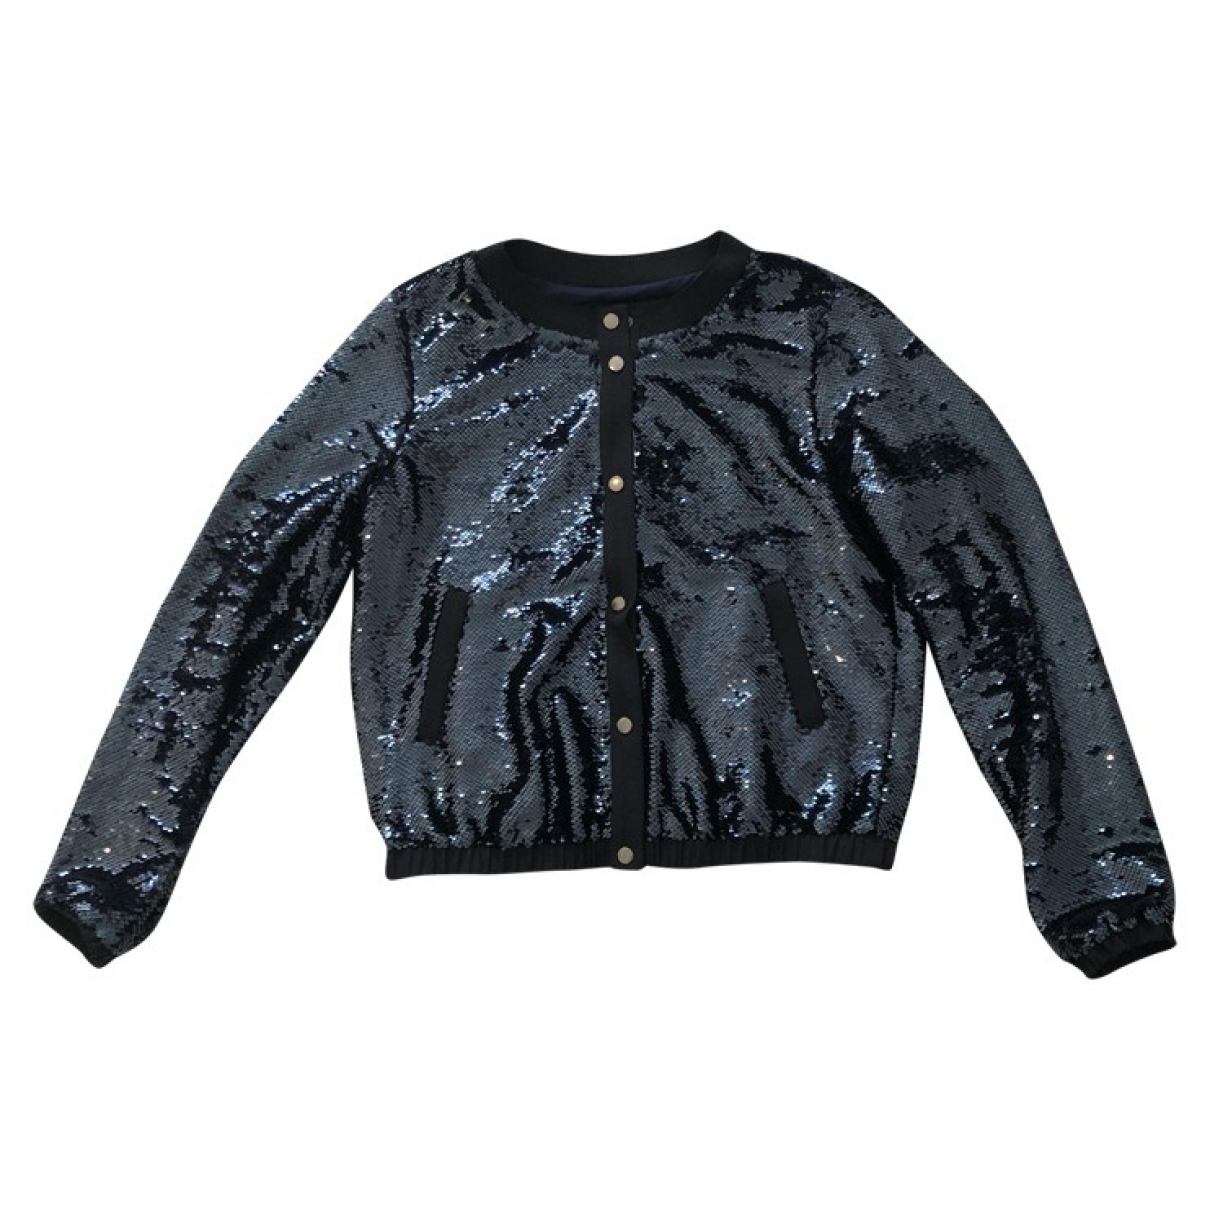 Emporio Armani \N Navy Glitter Leather jacket for Women 44 IT